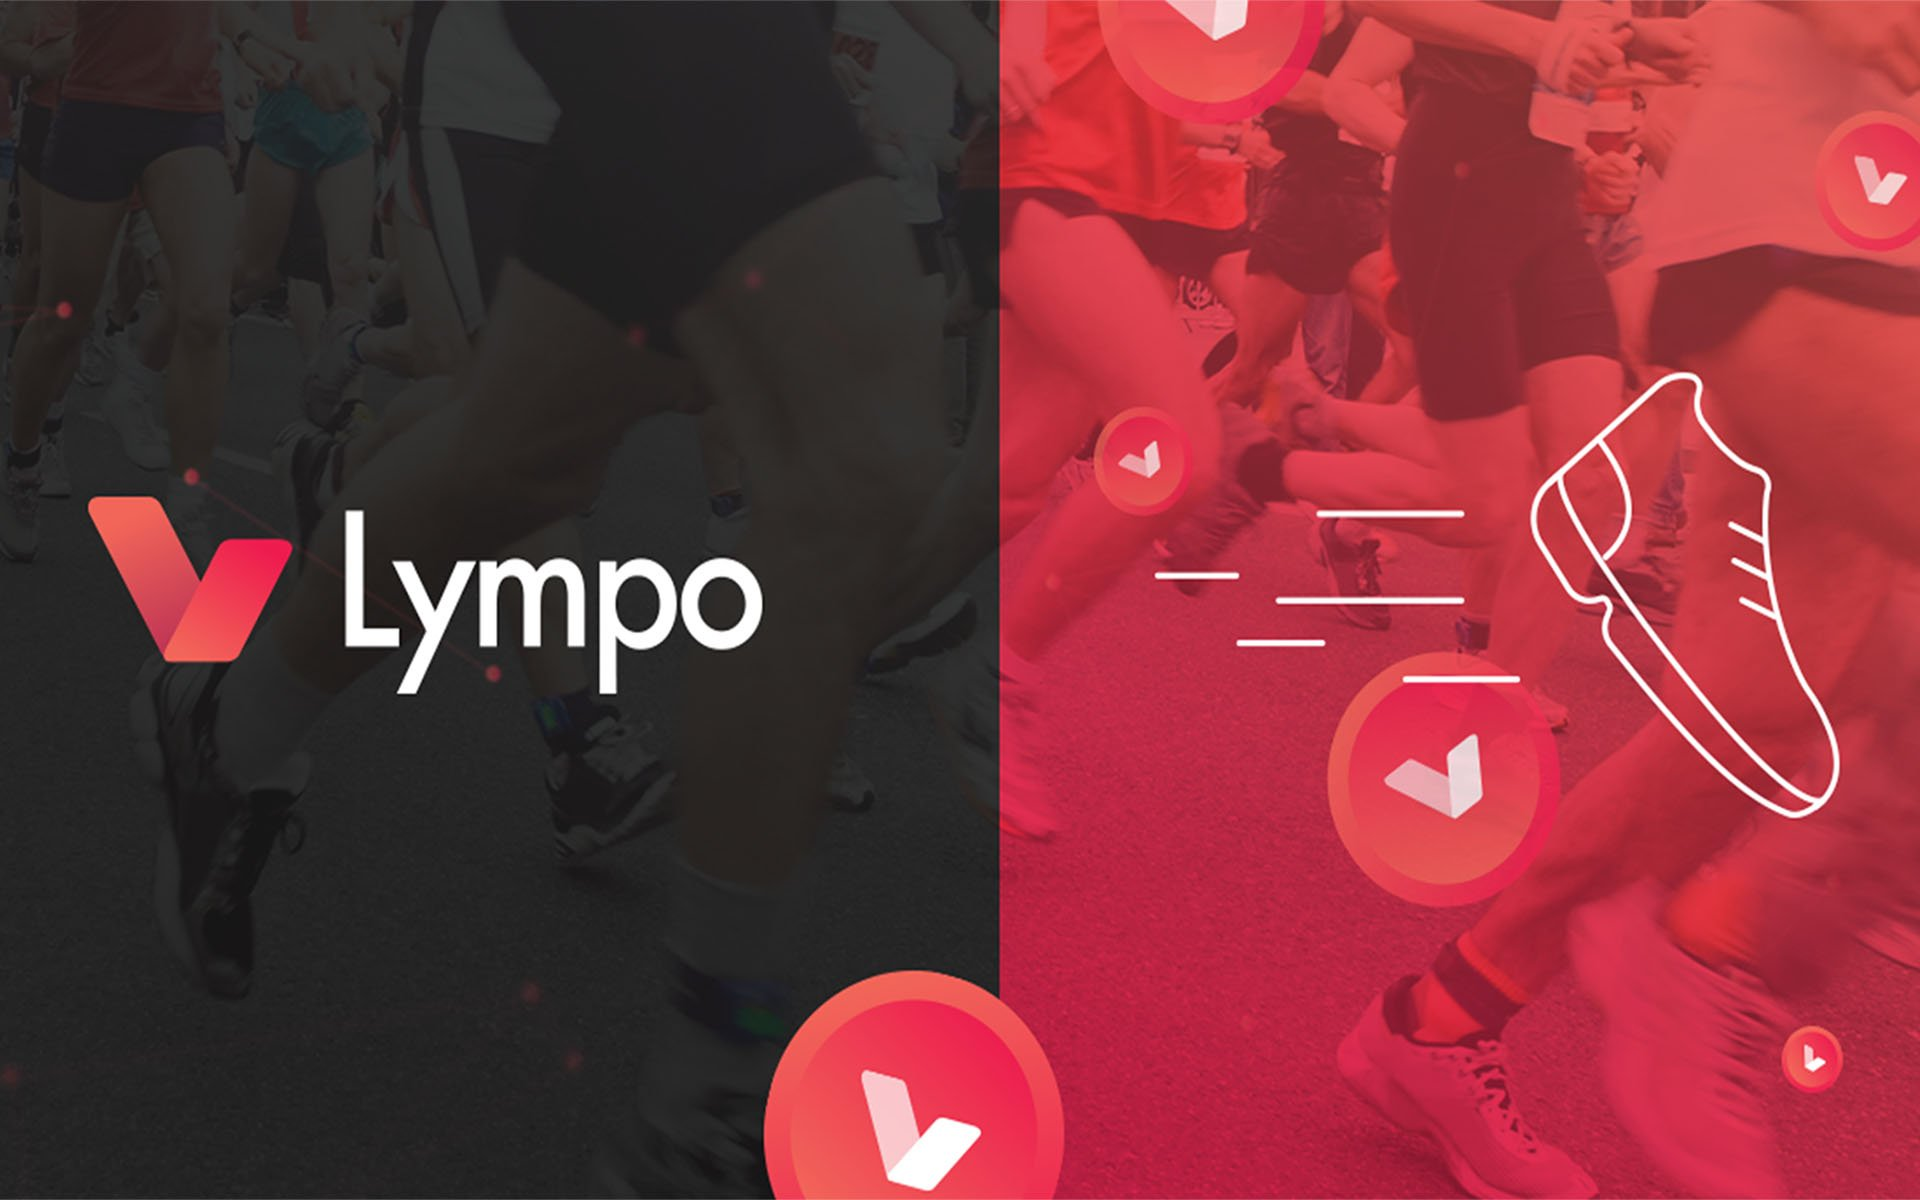 After US$5.5m Pre-Sale Lympo Launches ICO on February 17